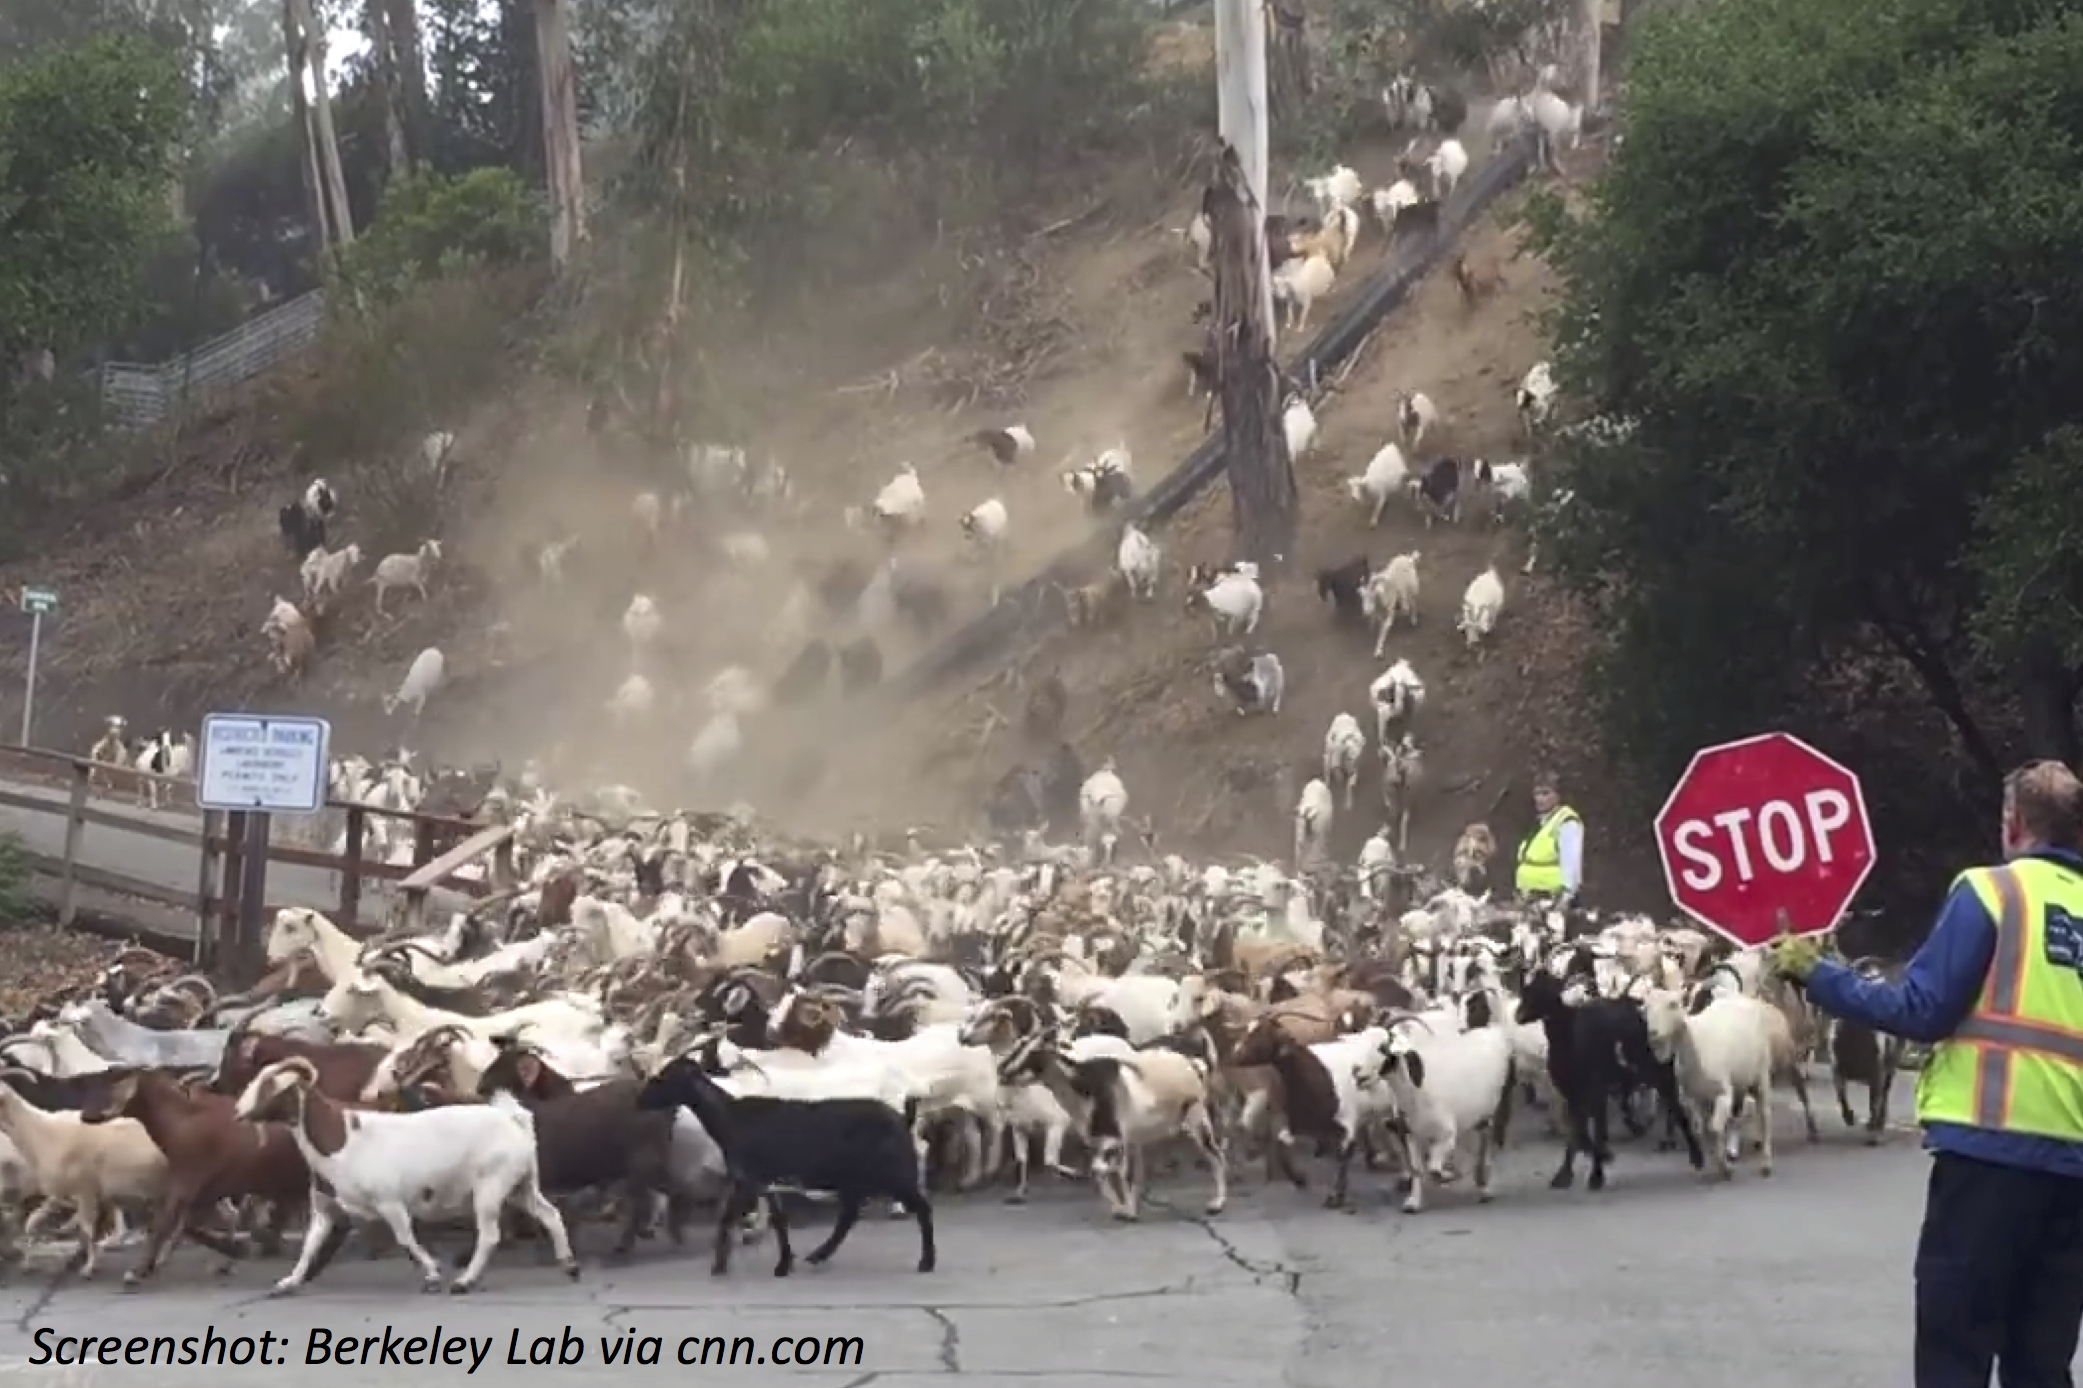 Goats on the Loose